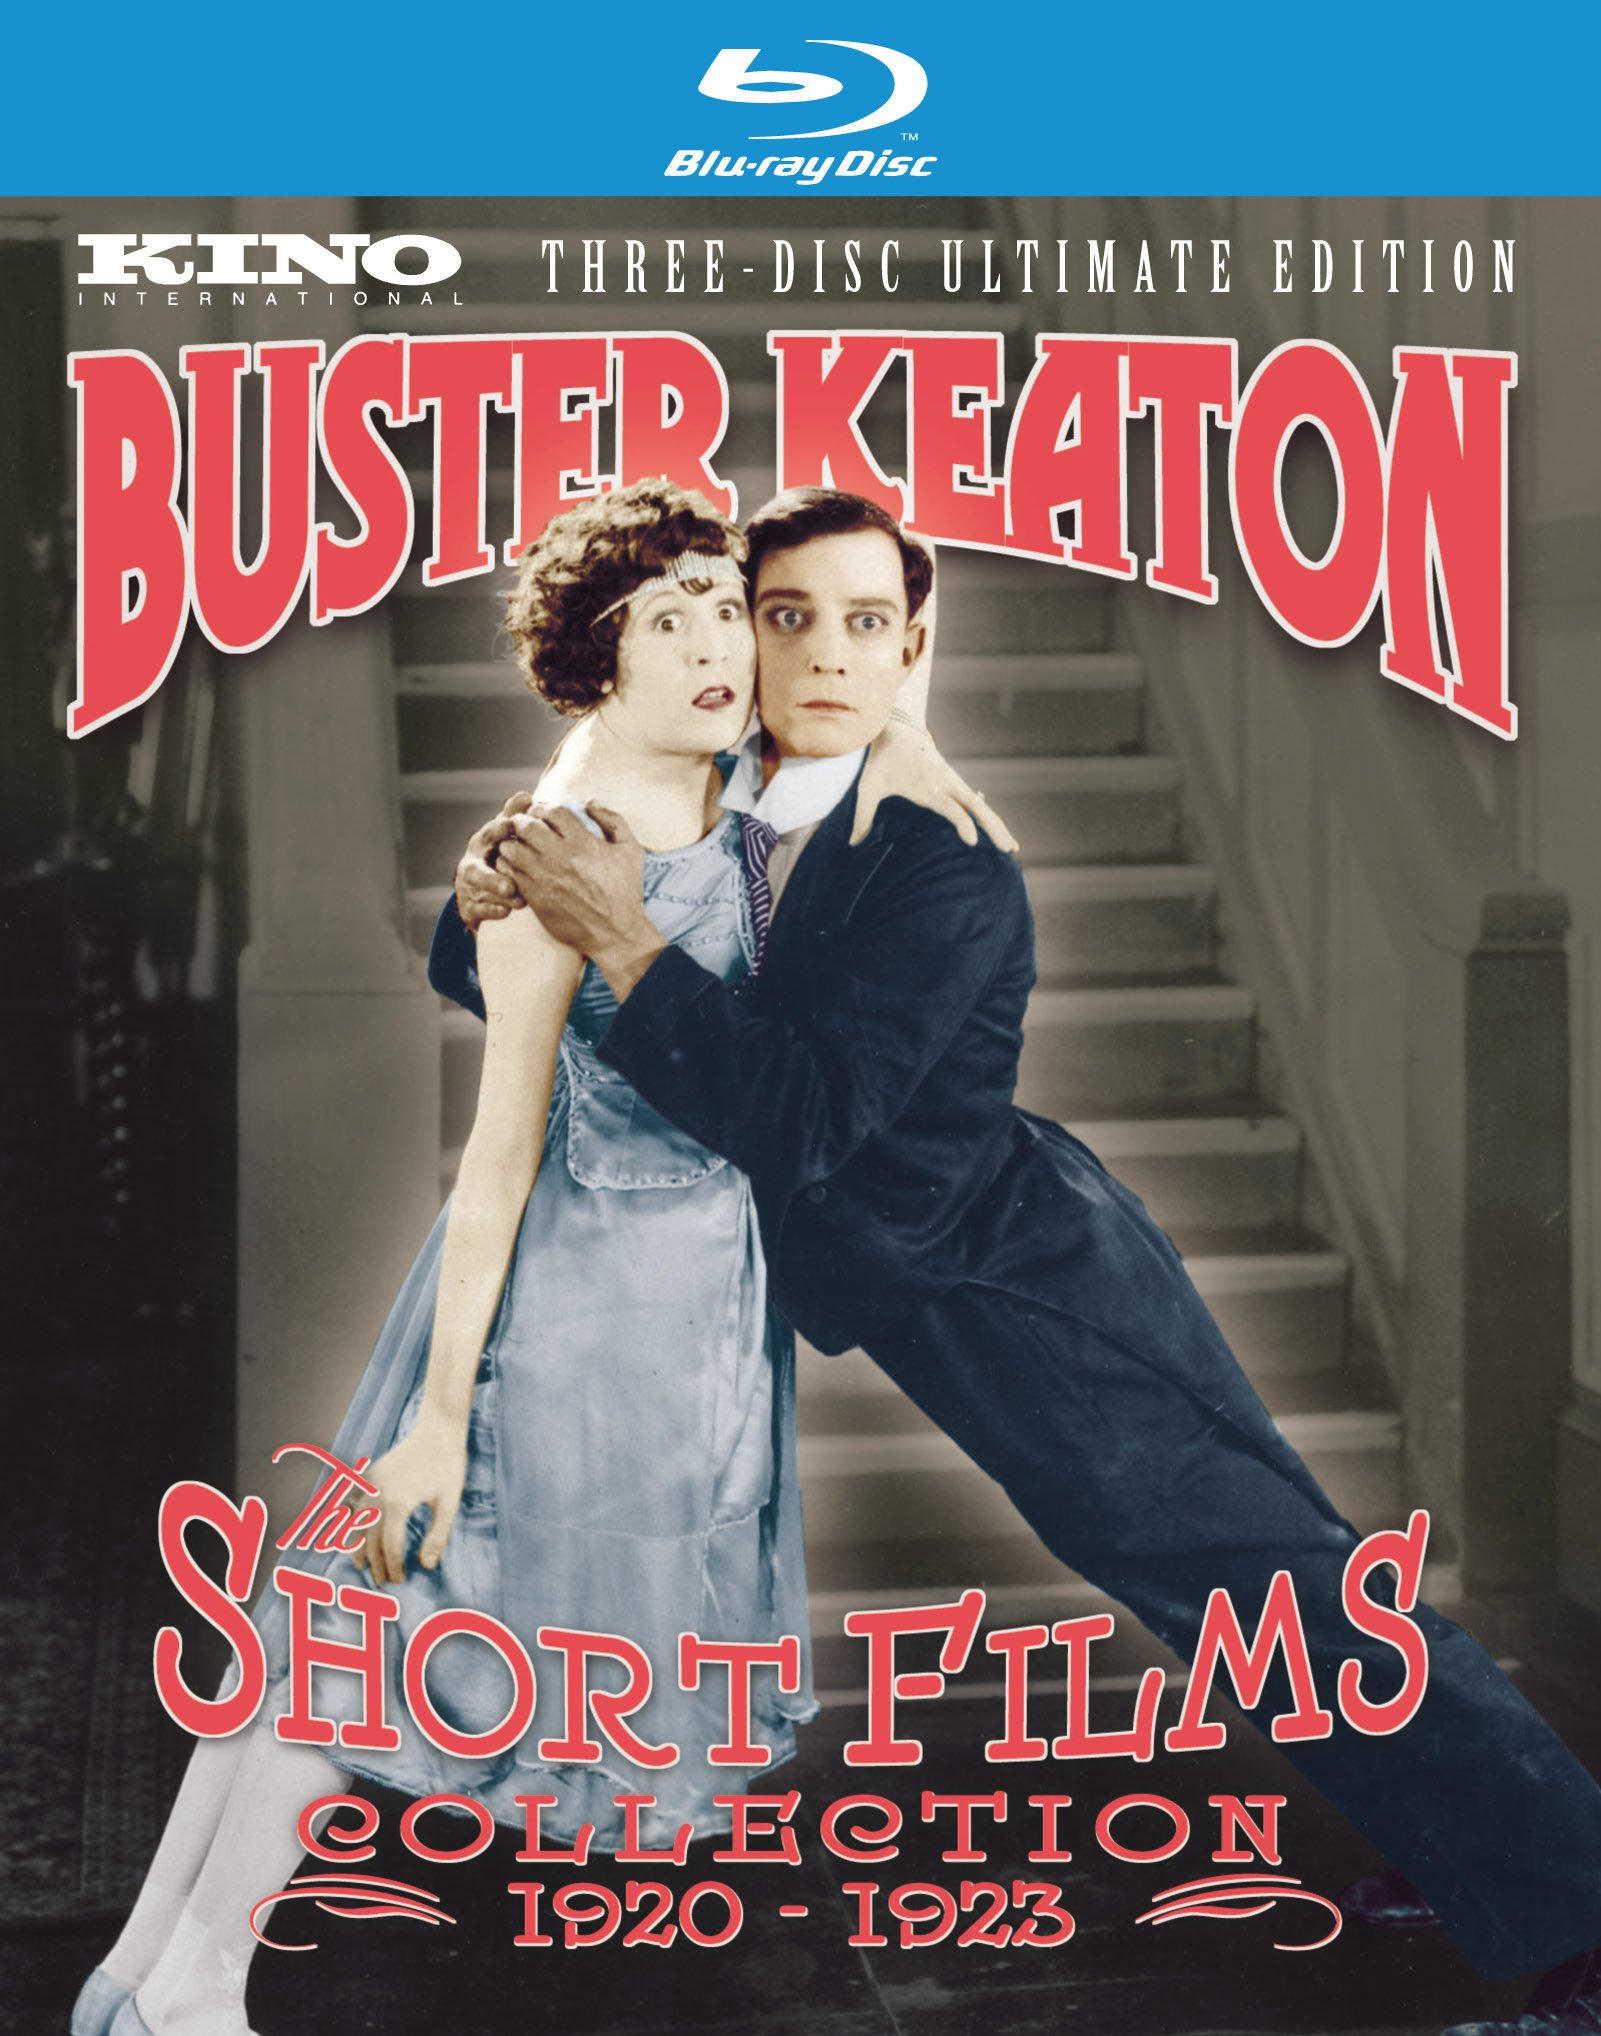 Buster Keaton Short Films Collection: 1920-1923 (Three-Disc Ultimate Edition) [Blu-ray] by Kino Lorber films